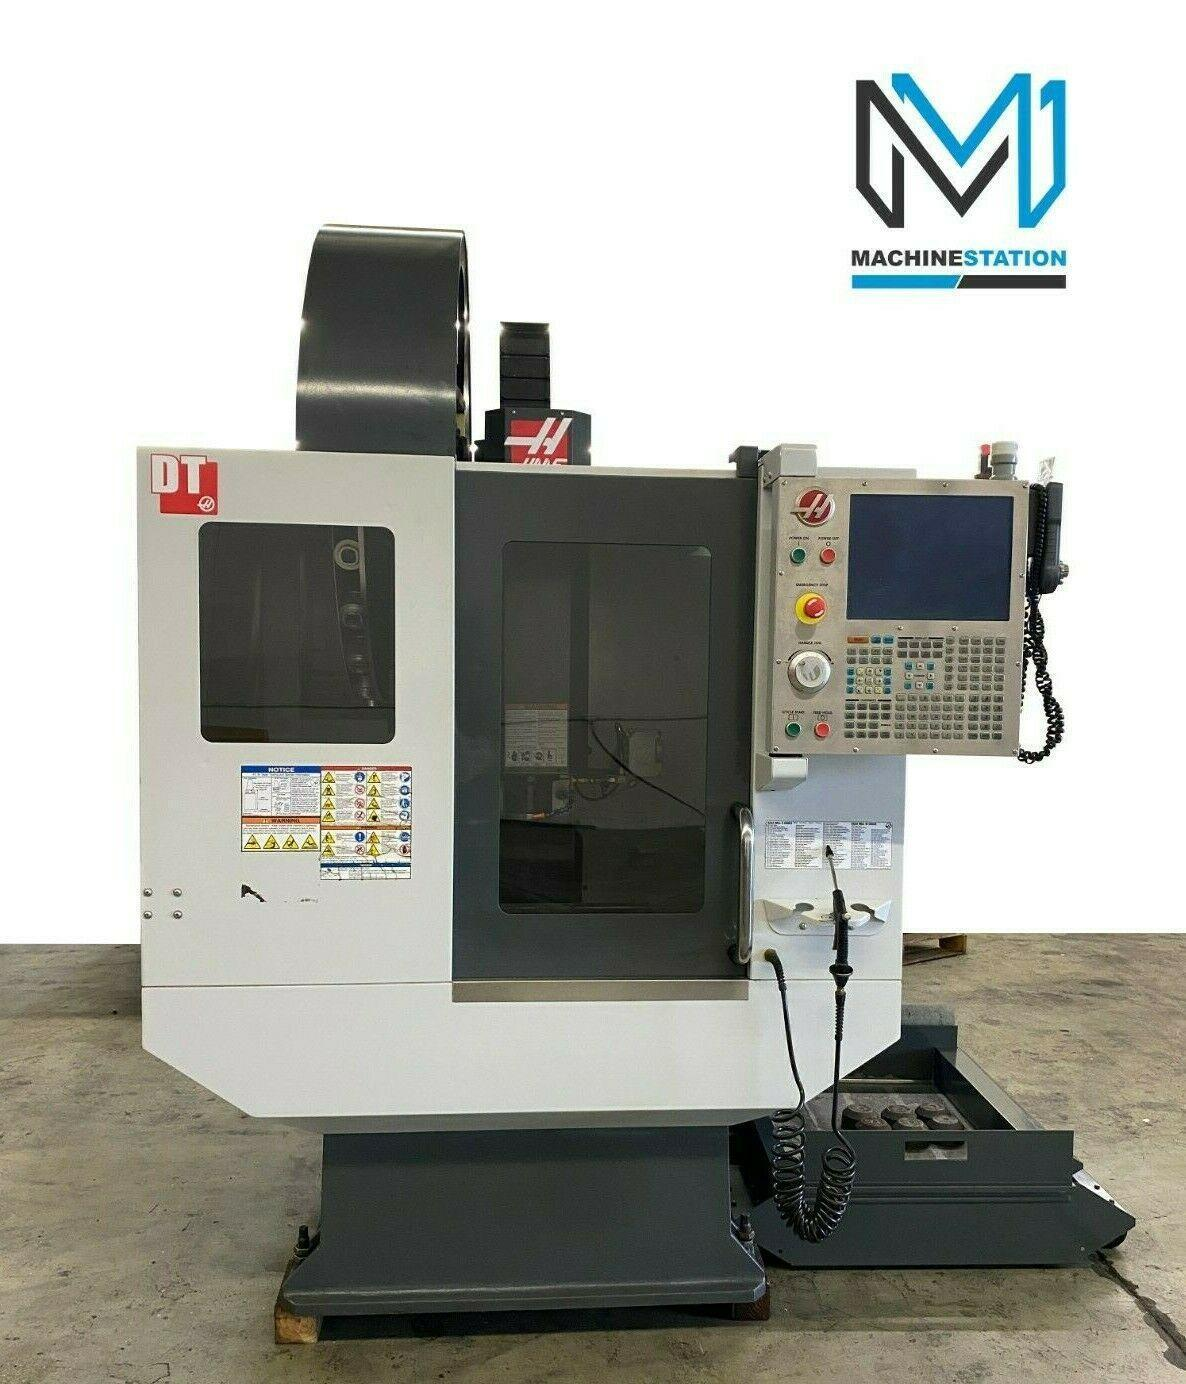 HAAS DT-1 DRILL TAP VERTICAL MACHINING CENTER